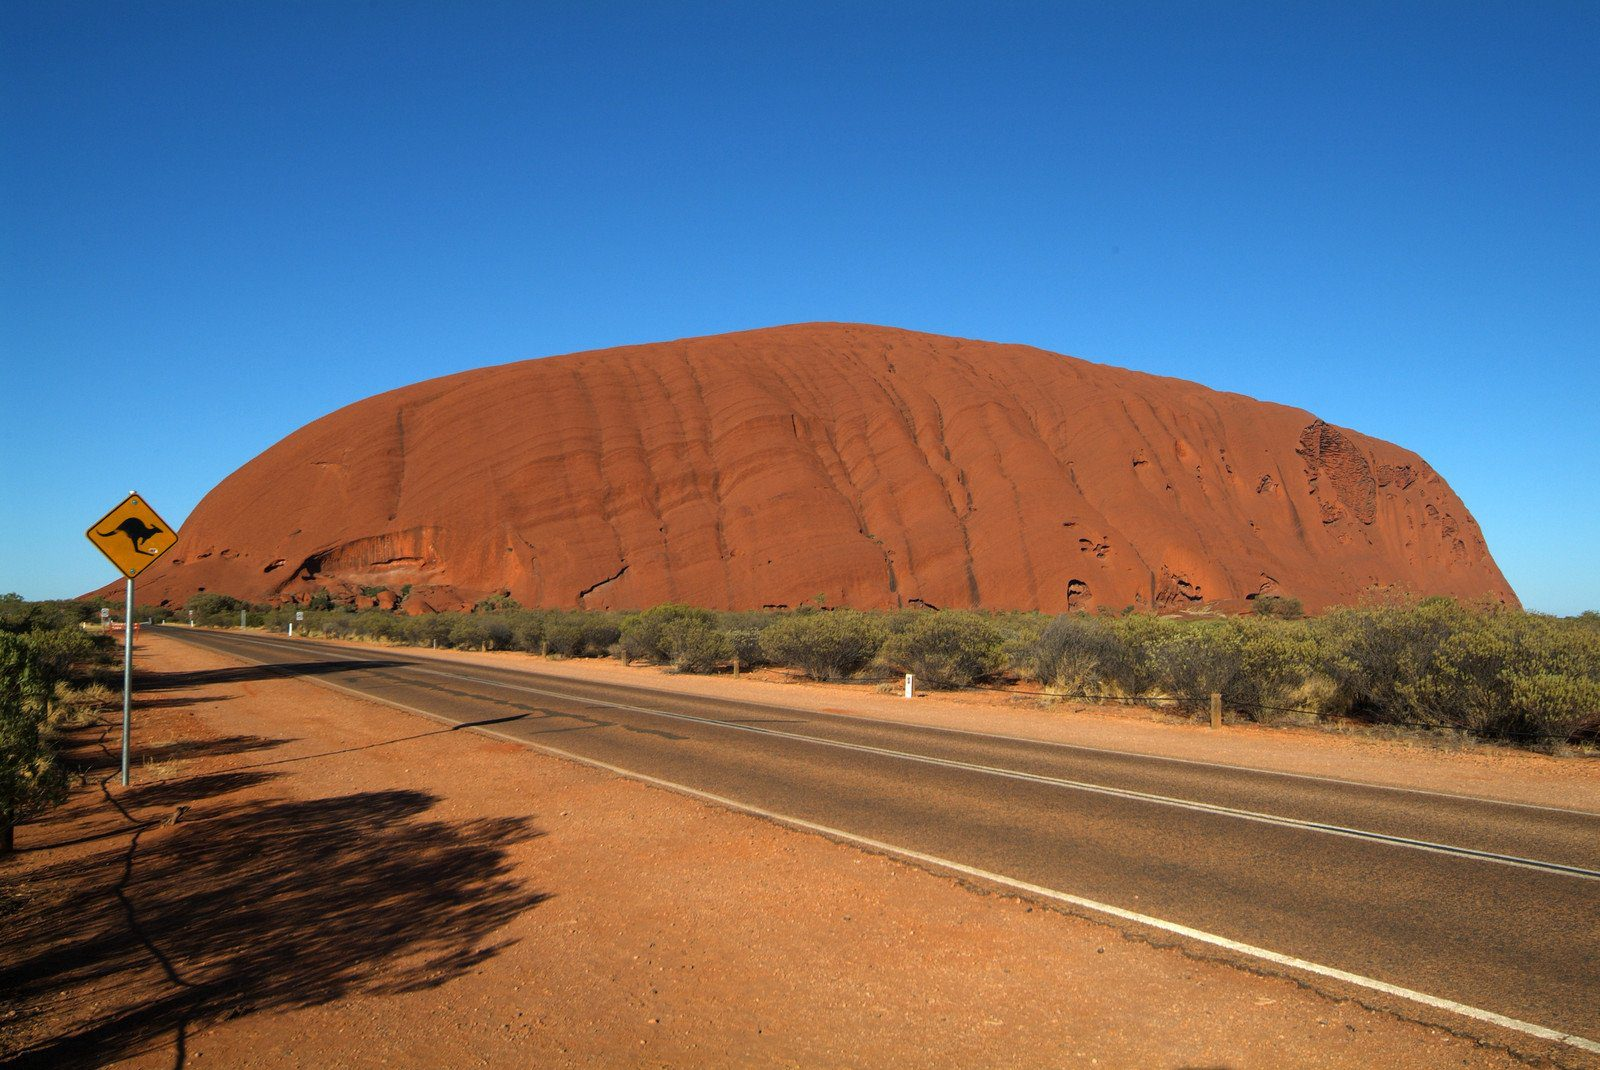 On the road to Uluru, Central Australia